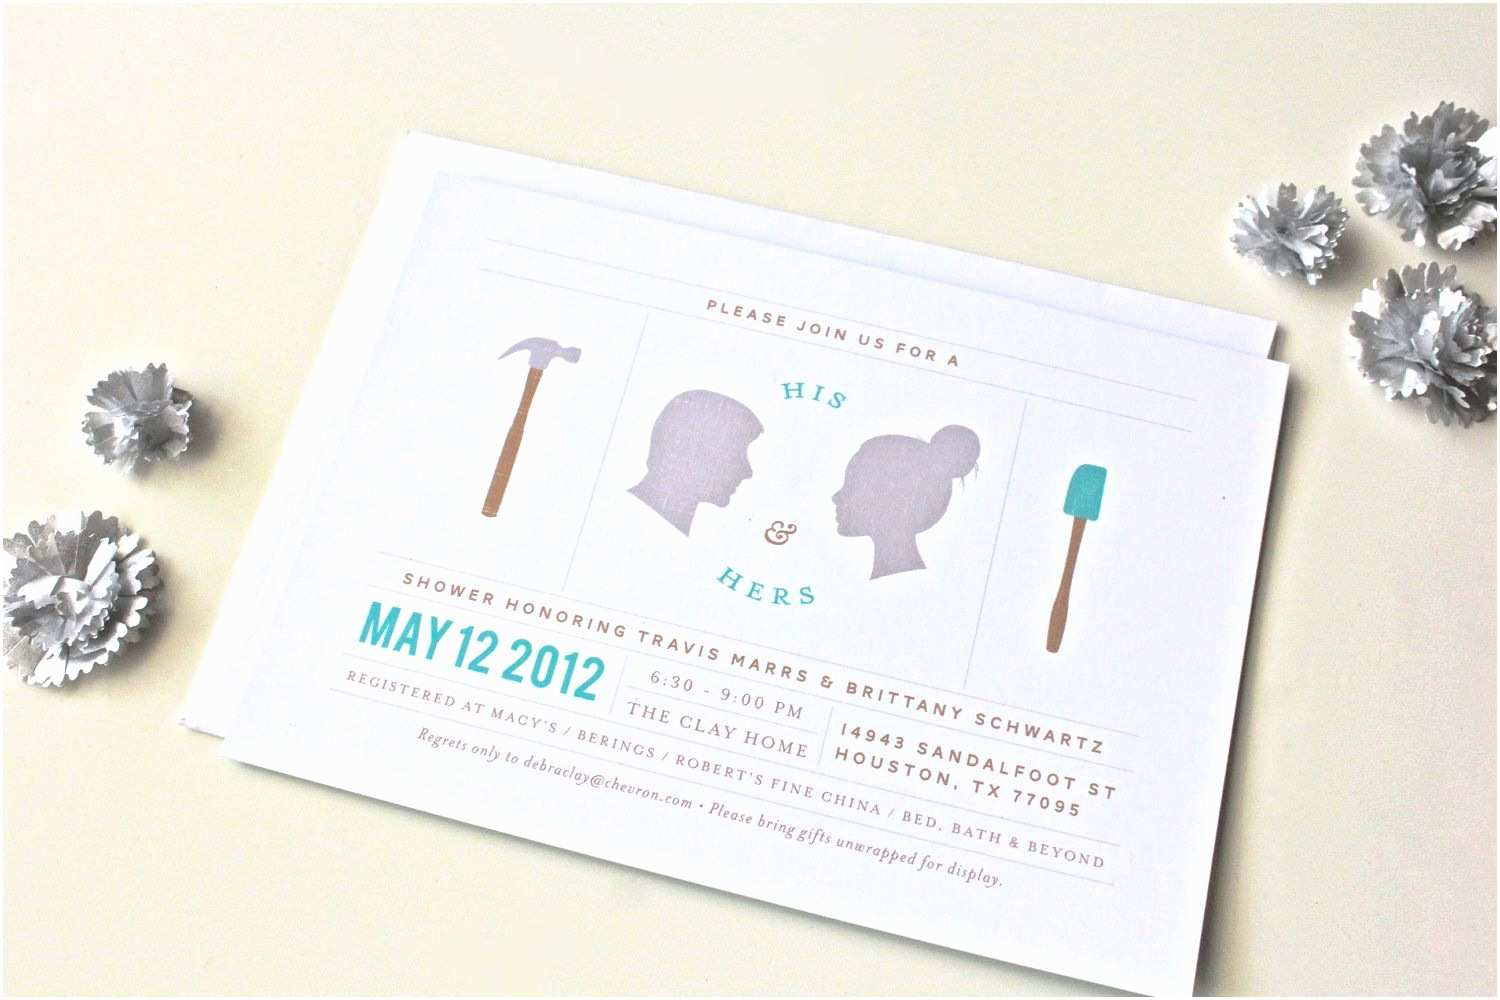 Wedding Invitation with Photos Of Couples Free Invitations Card Couples Wedding Shower Invitation